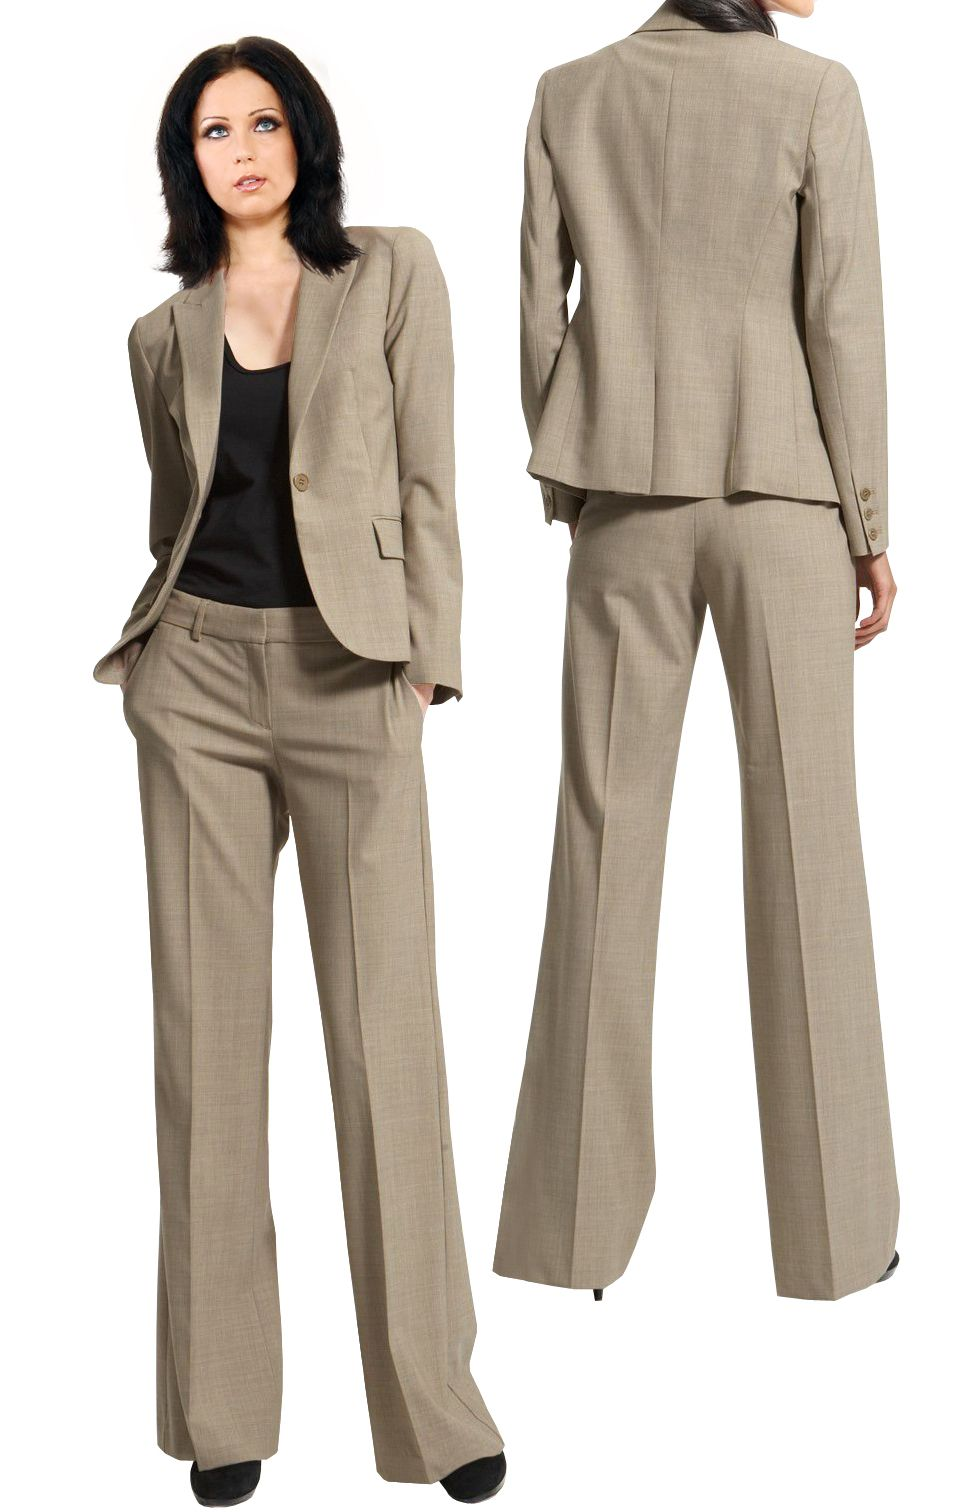 Petite Suiting- Suits For Petite Women | Tan pants, Interview and